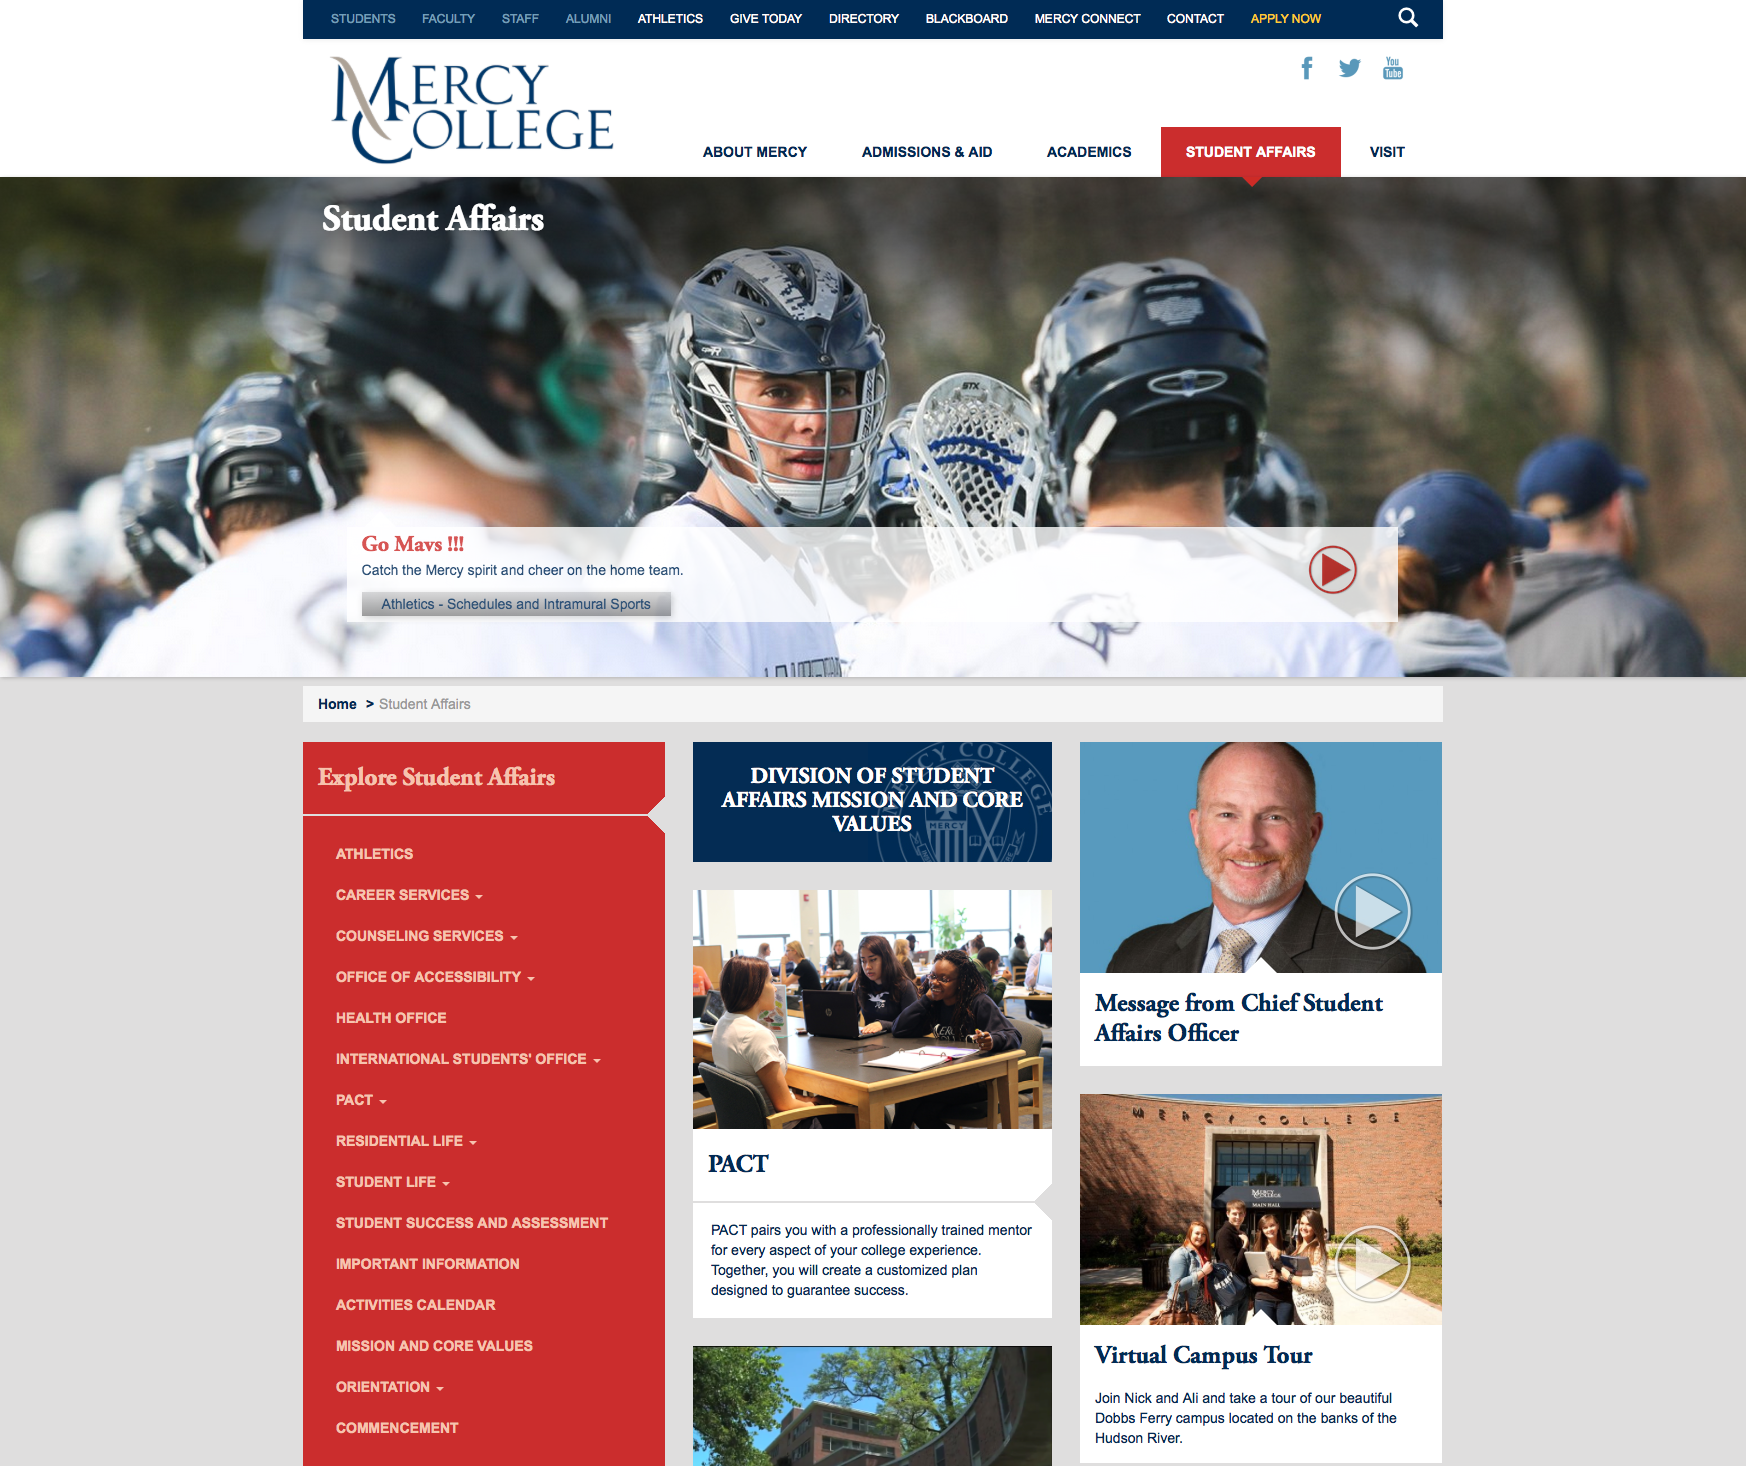 Project Image 2 for Mercy College